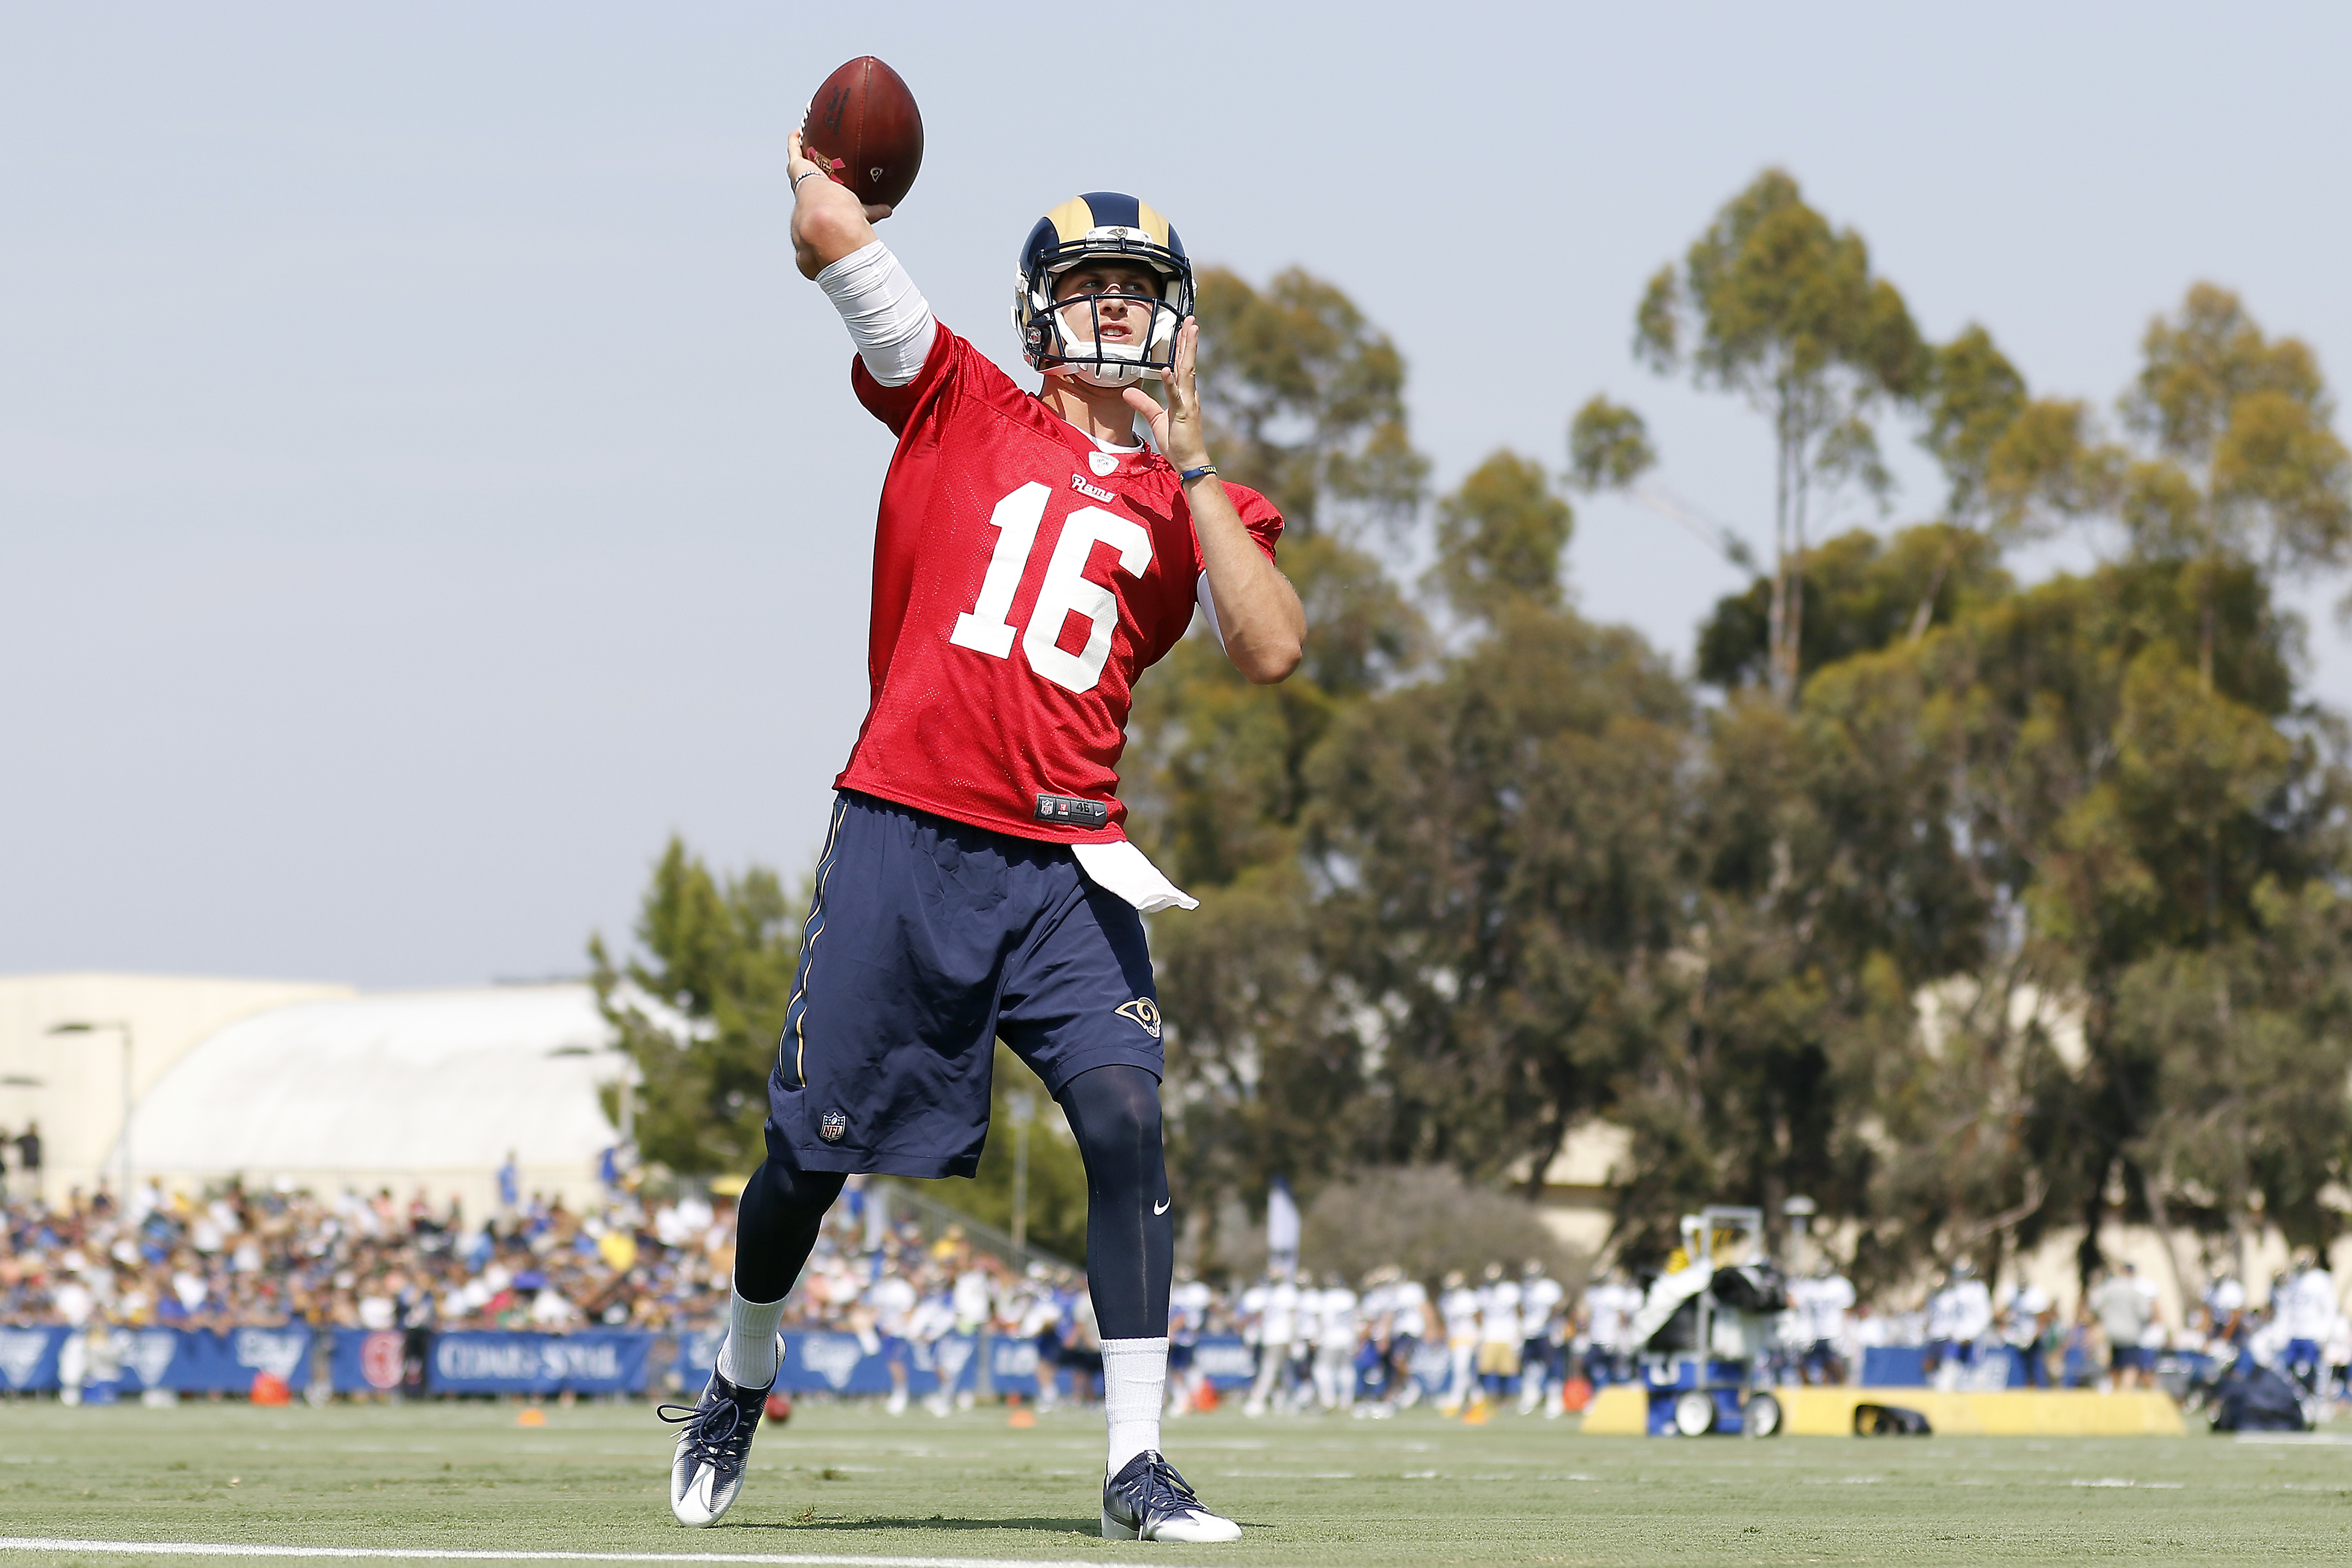 Los Angeles Rams quarterback Jared Goff throws during the NFL football team's training camp, Saturday, July 30, 2016, in Irvine, Calif. (AP Photo/Ryan Kang)